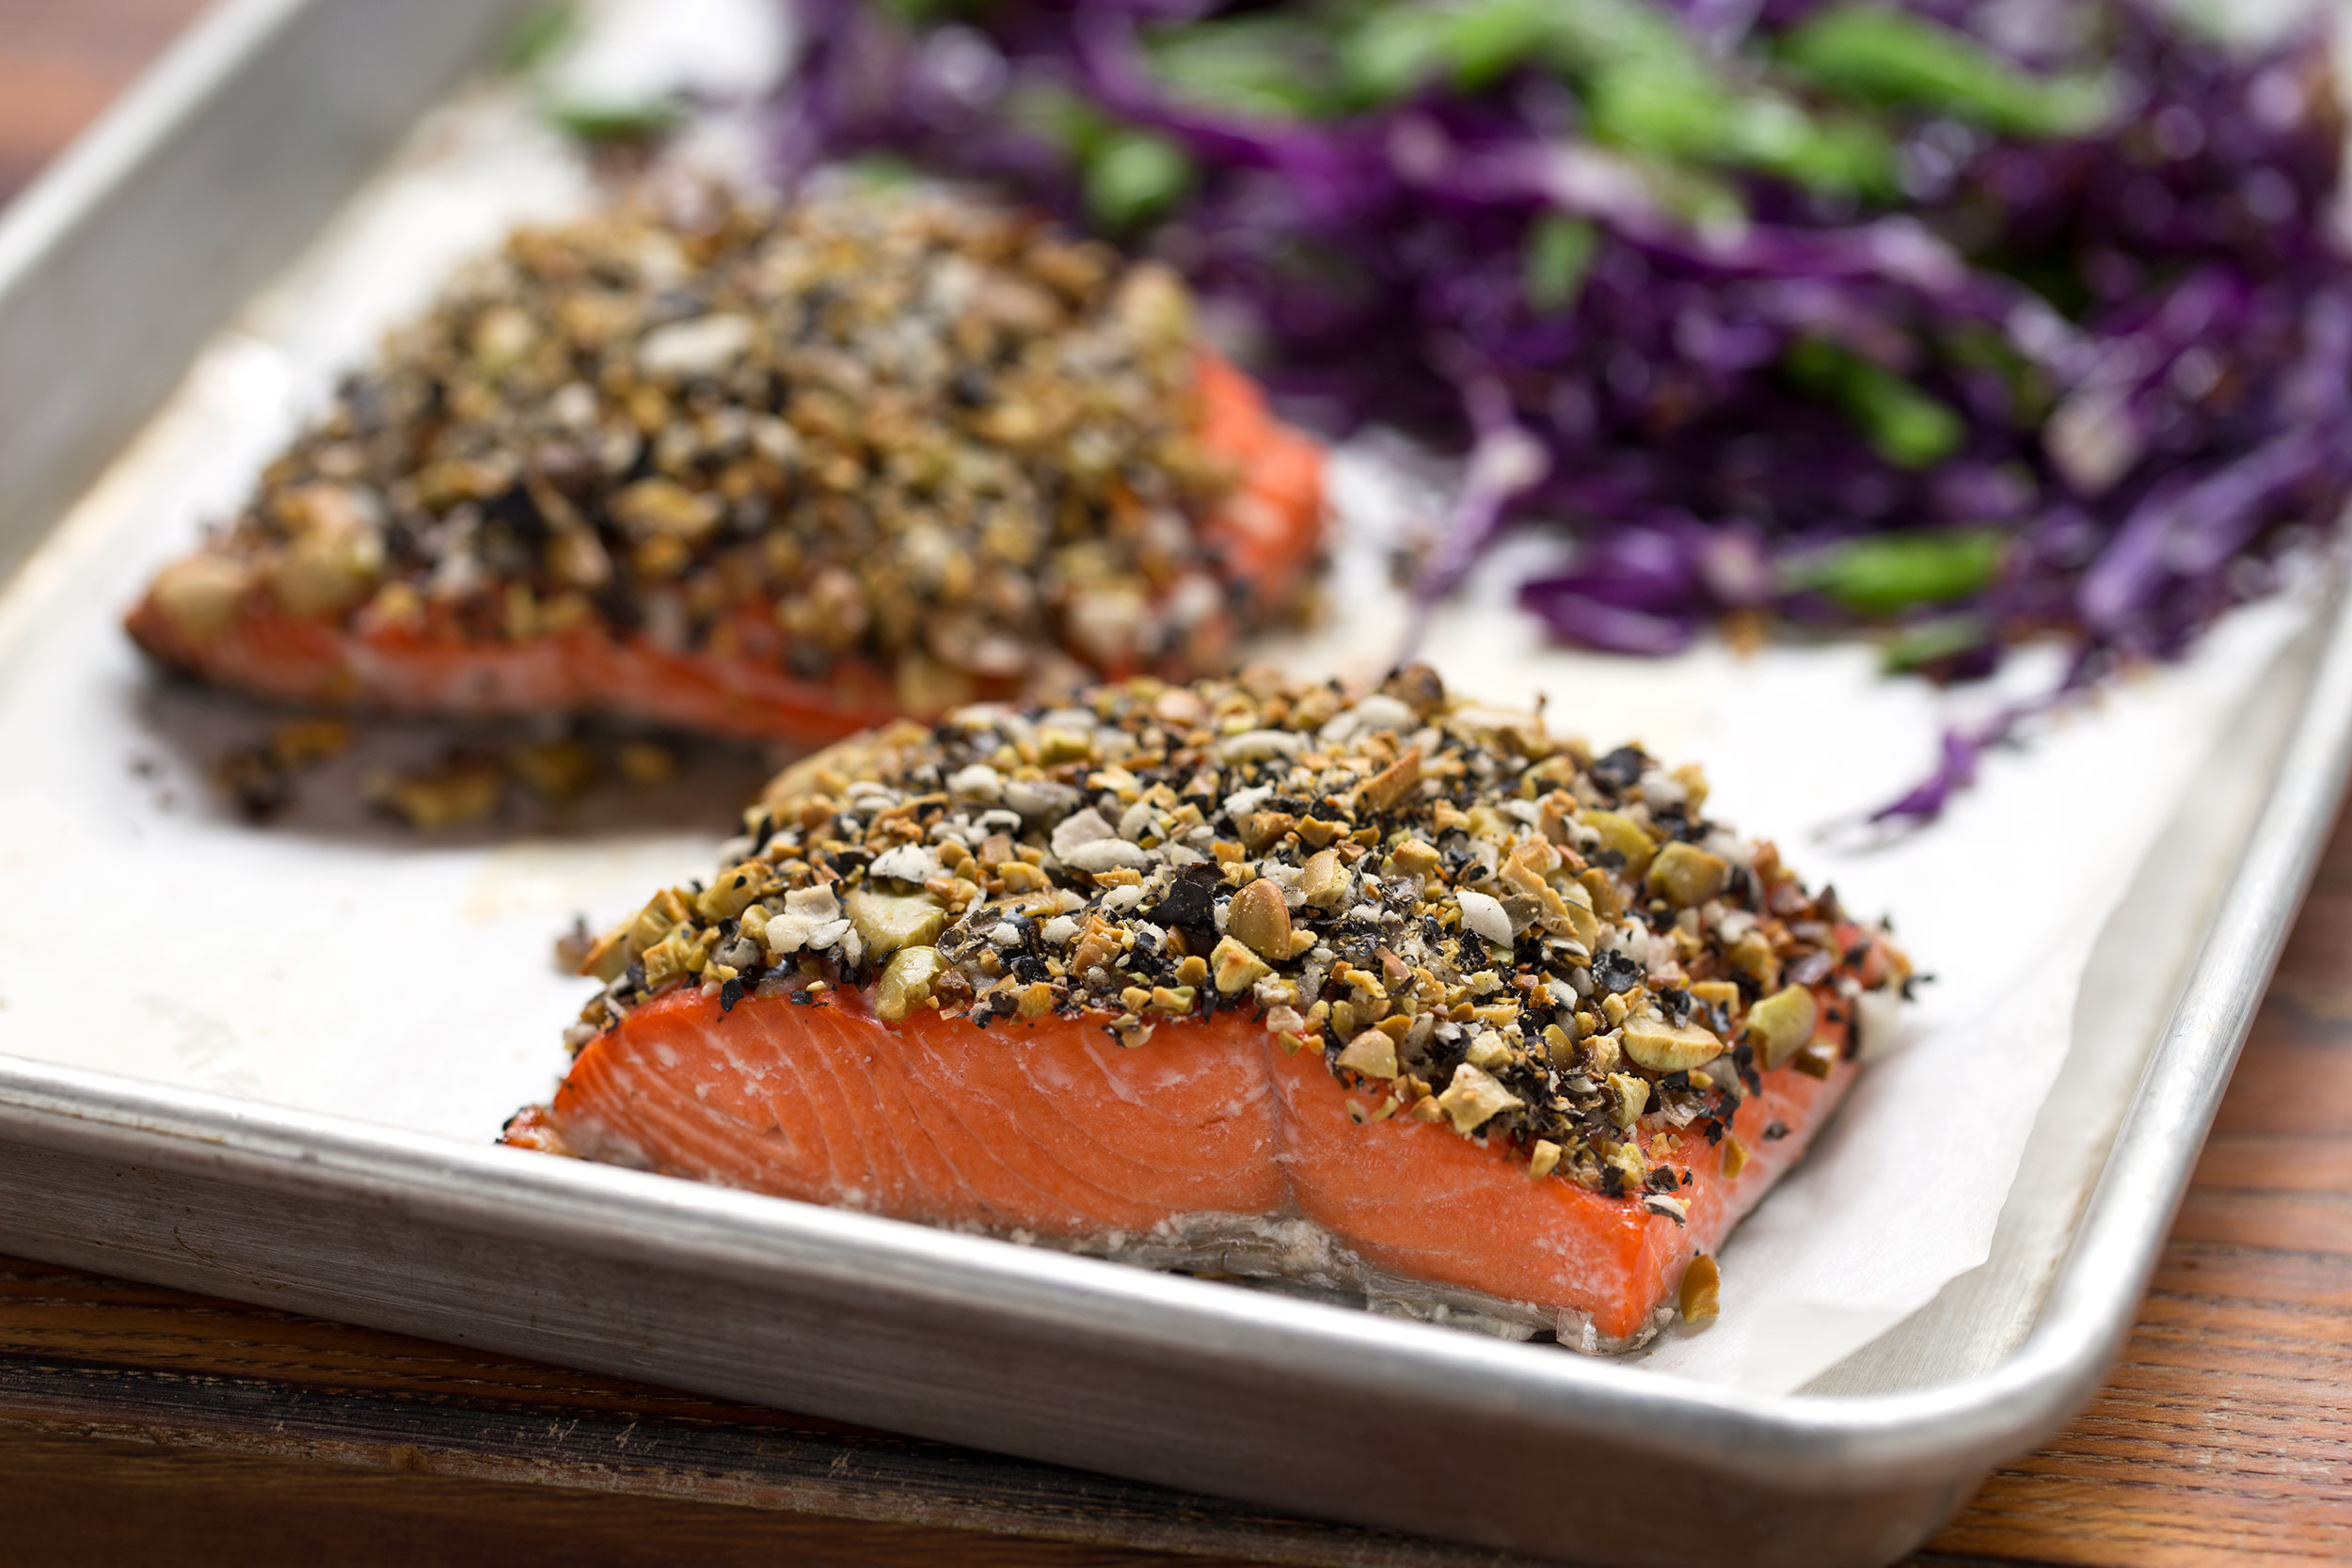 Crunchy Salmon With Wasabi Black Bean Topping